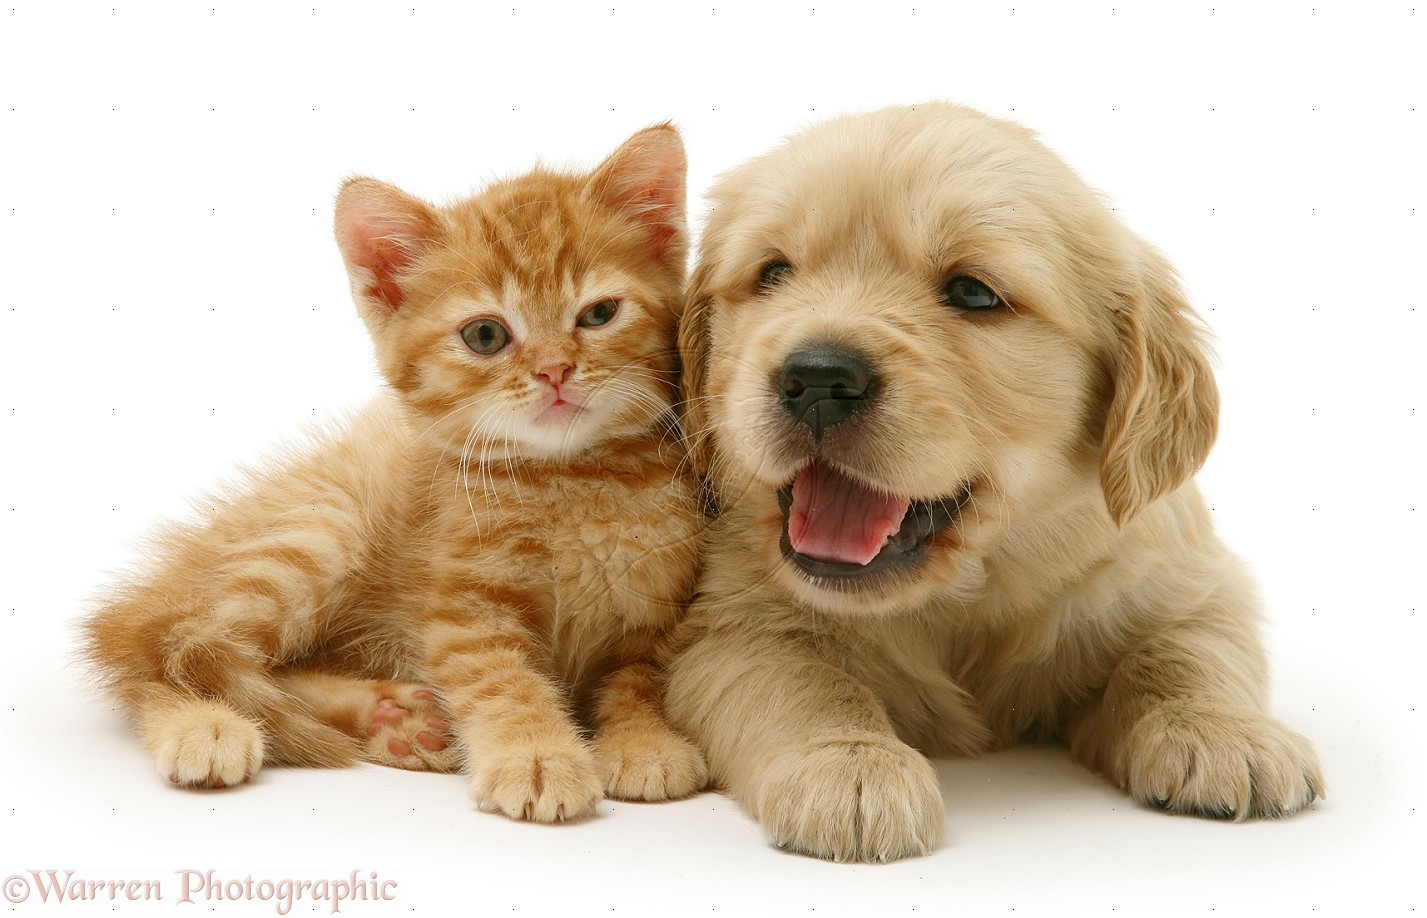 Cute Kittens And Puppies Posted By Sarah Peltier